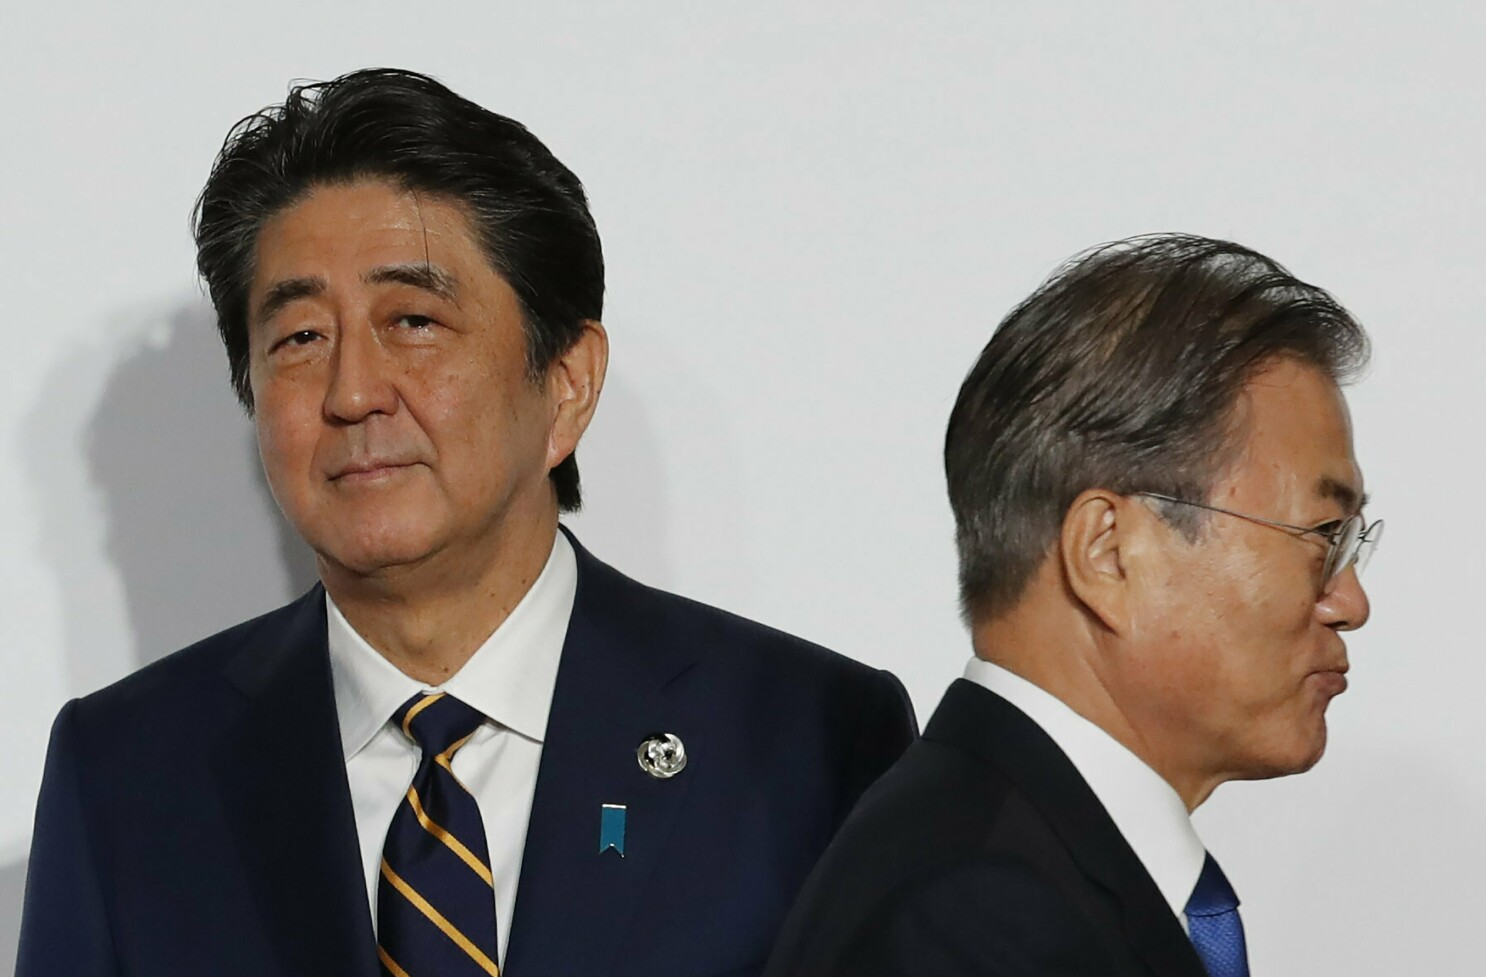 Japan uses trade restrictions as a weapon against South Korea